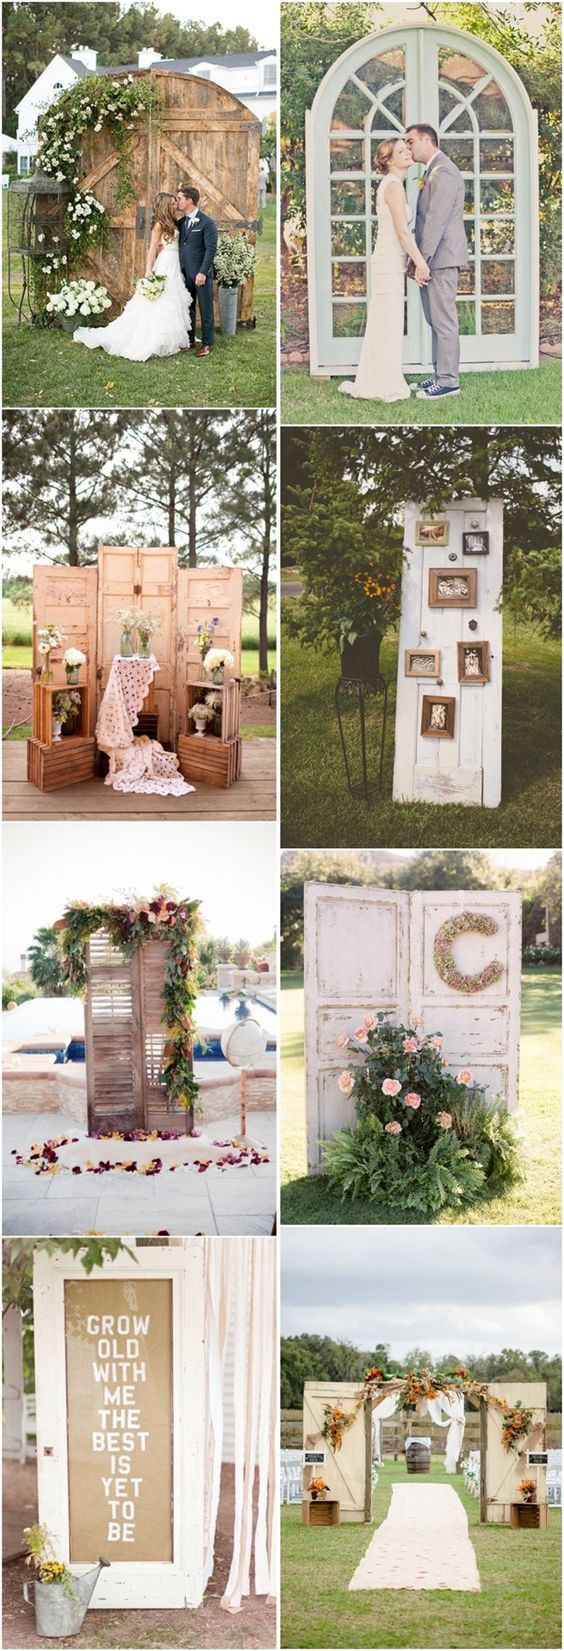 Uncategorized/outdoor vintage glam wedding rustic wedding chic - 35 Rustic Old Door Wedding Decor Ideas For Outdoor Country Weddings